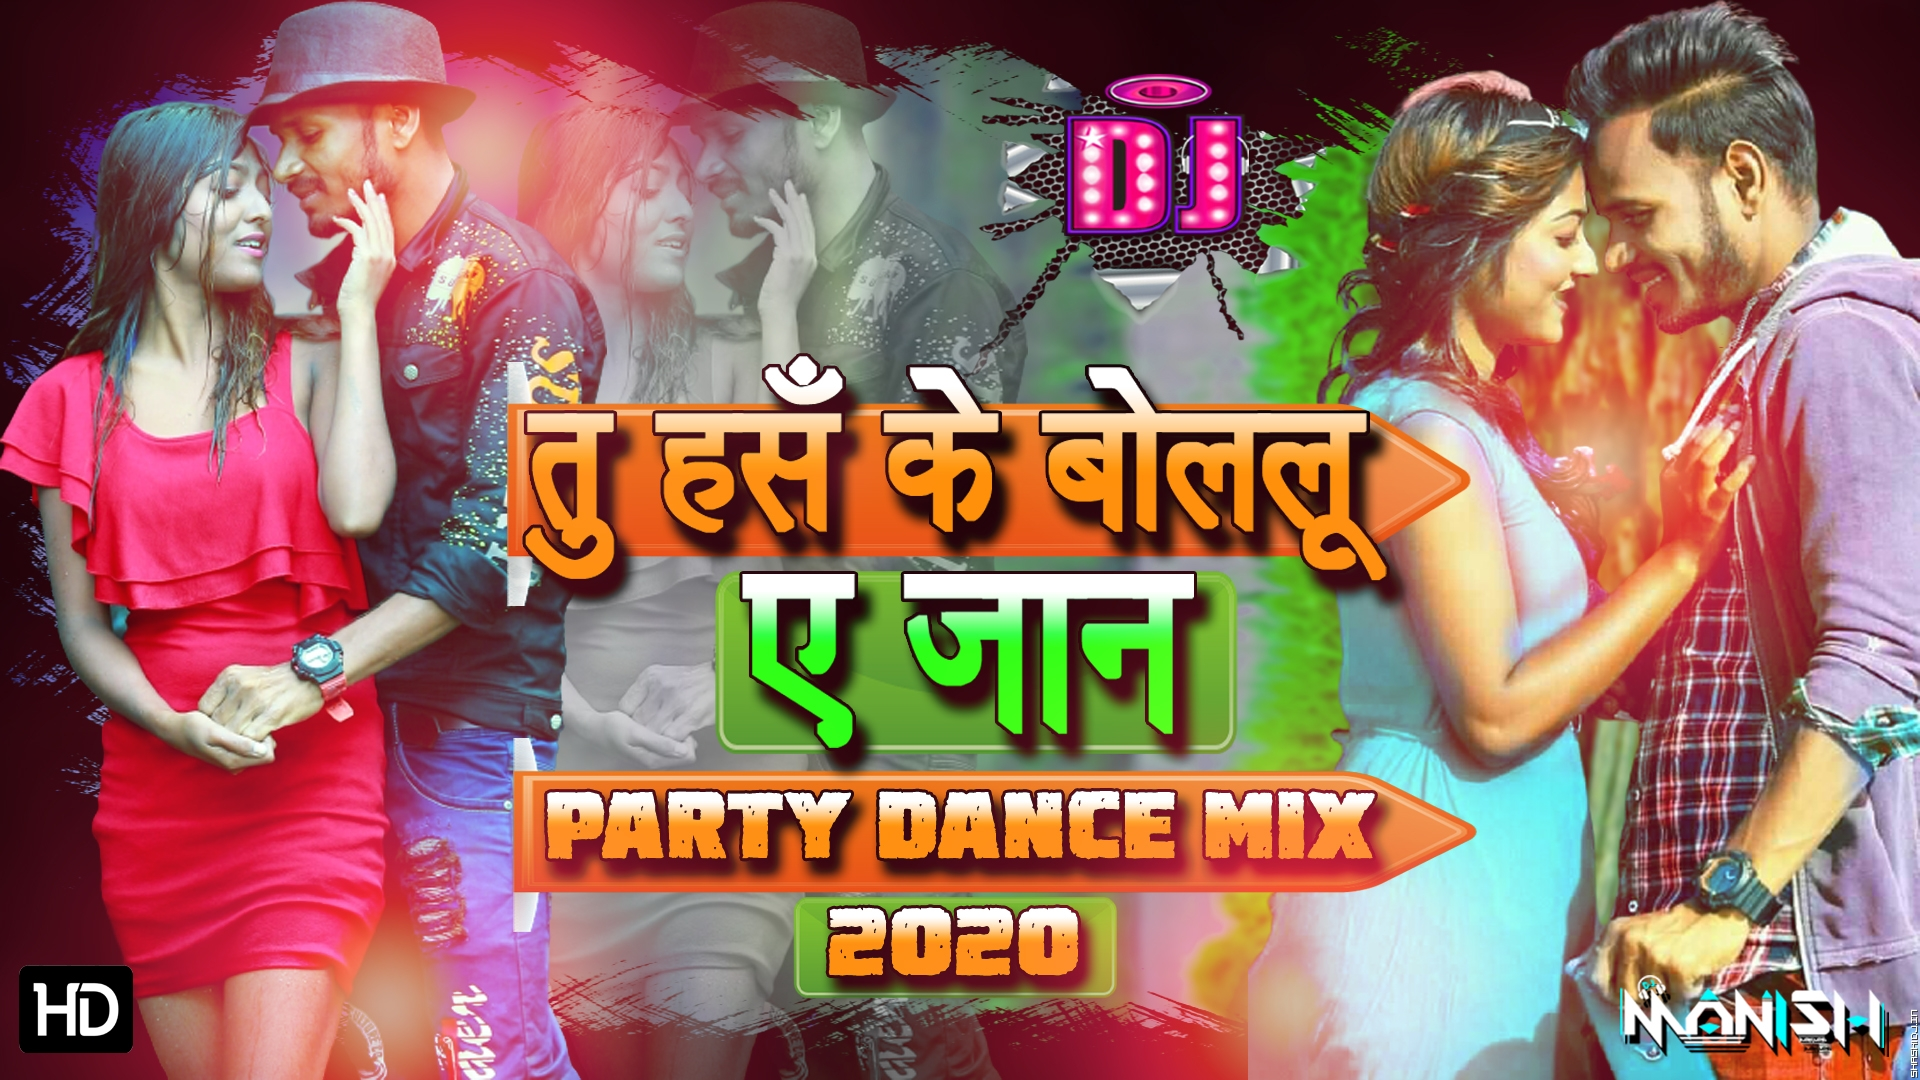 TU HASKE BOLELU YE JAAN  Party Dance Mix 2020  Mix By Dj Manish Dhanbad.mp3